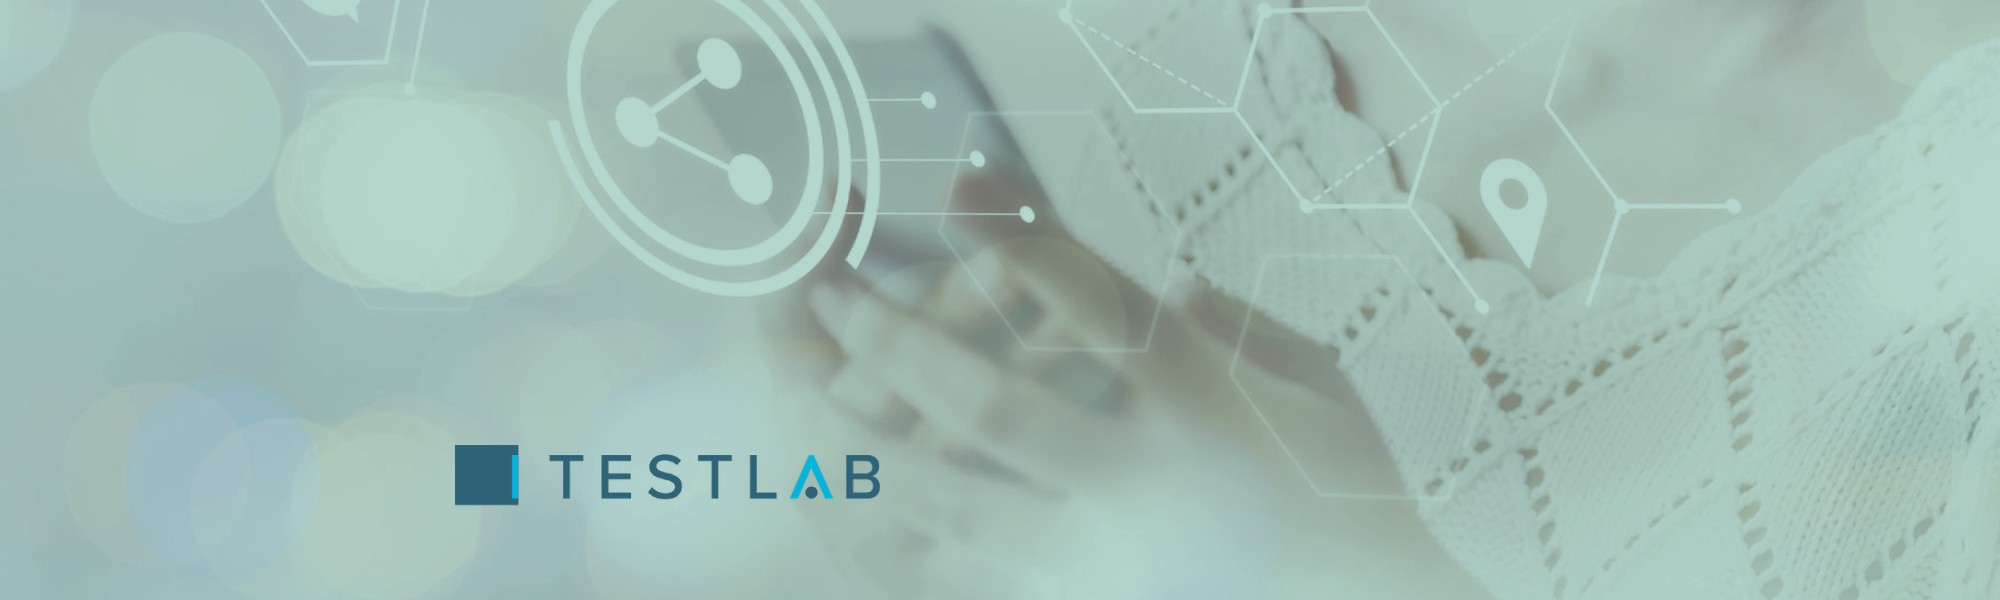 Introducing TestLab: What to expect from the OSC's new testing environment